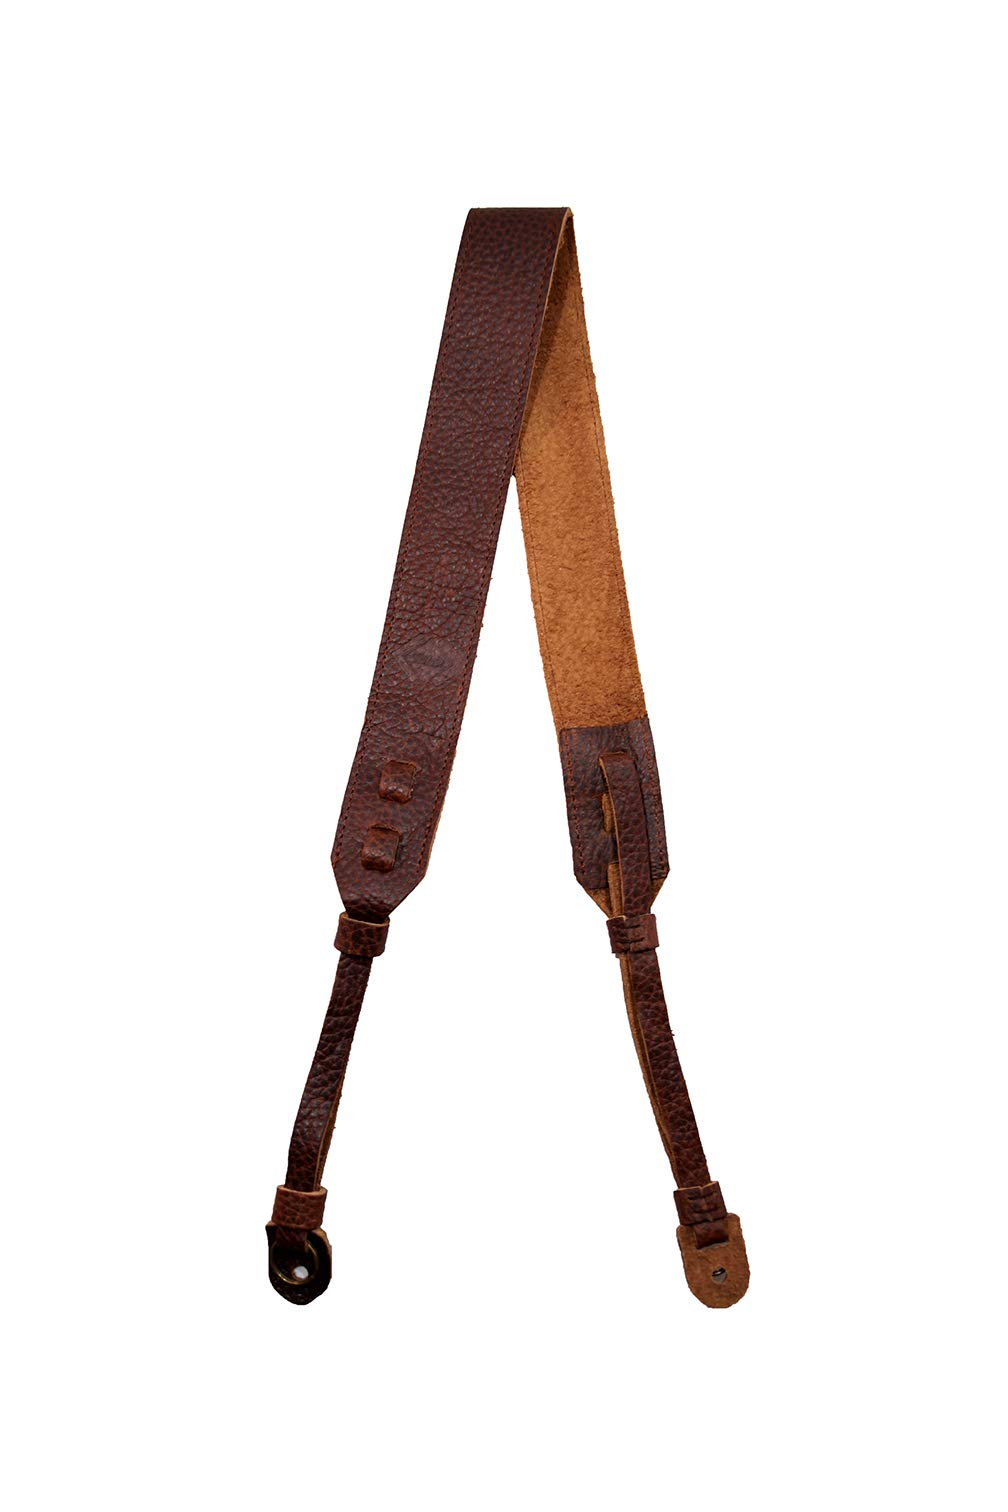 TETHER's Brown Leather Camera Strap for DSLR or SLR Camera, DSLR Camera Strap. Camera Accessories. Canon Camera Strap. Nikon Camera Strap (Brown) by TETHER